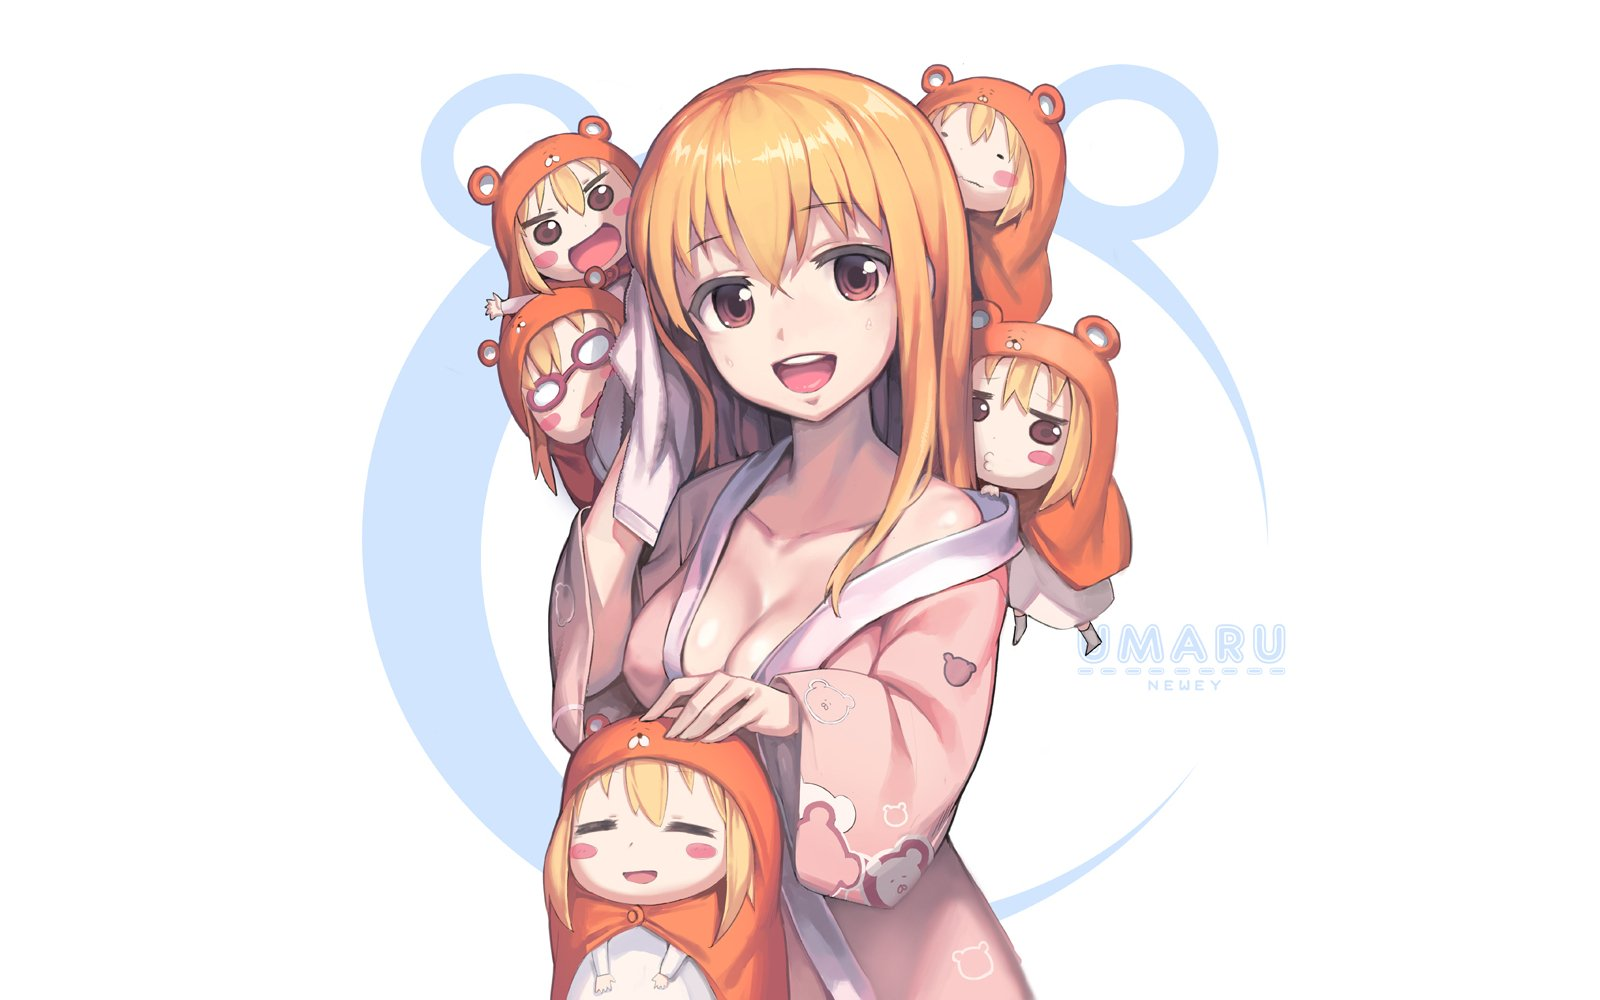 Anime - Himouto! Umaru-chan  Umaru Doma Chibi Anime Kimono Long Hair Blonde Wallpaper